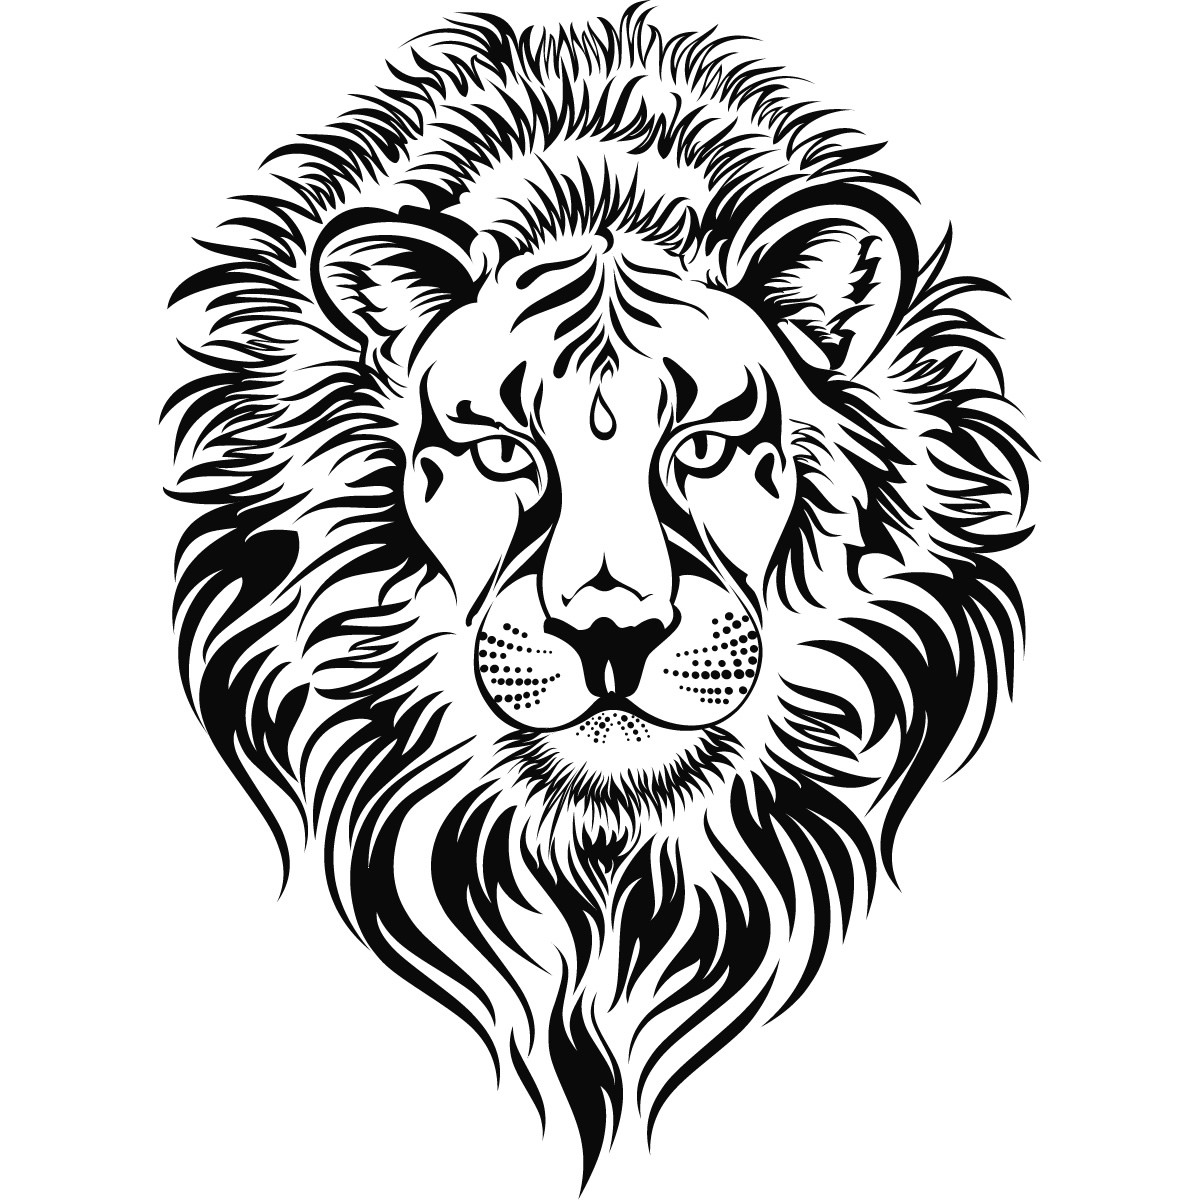 1200x1200 Images For Lion Profile Drawing Art Inspiration Pinterest Home